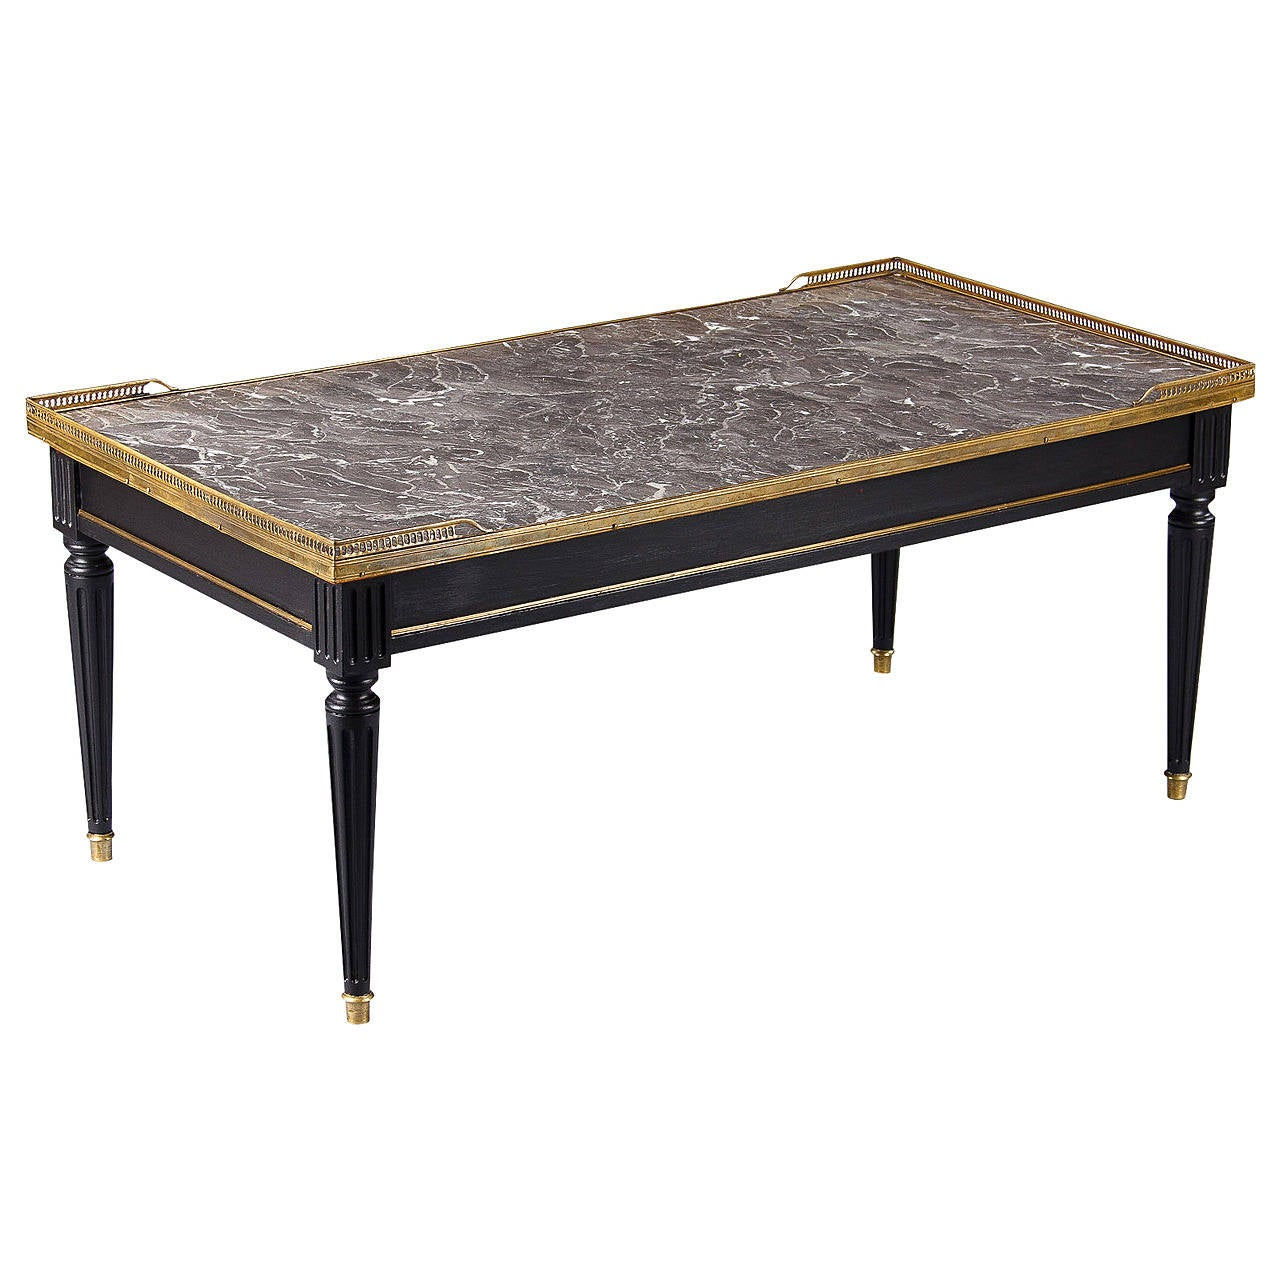 French louis xvi style marble top coffee table 1940s at 1stdibs Stone coffee table top